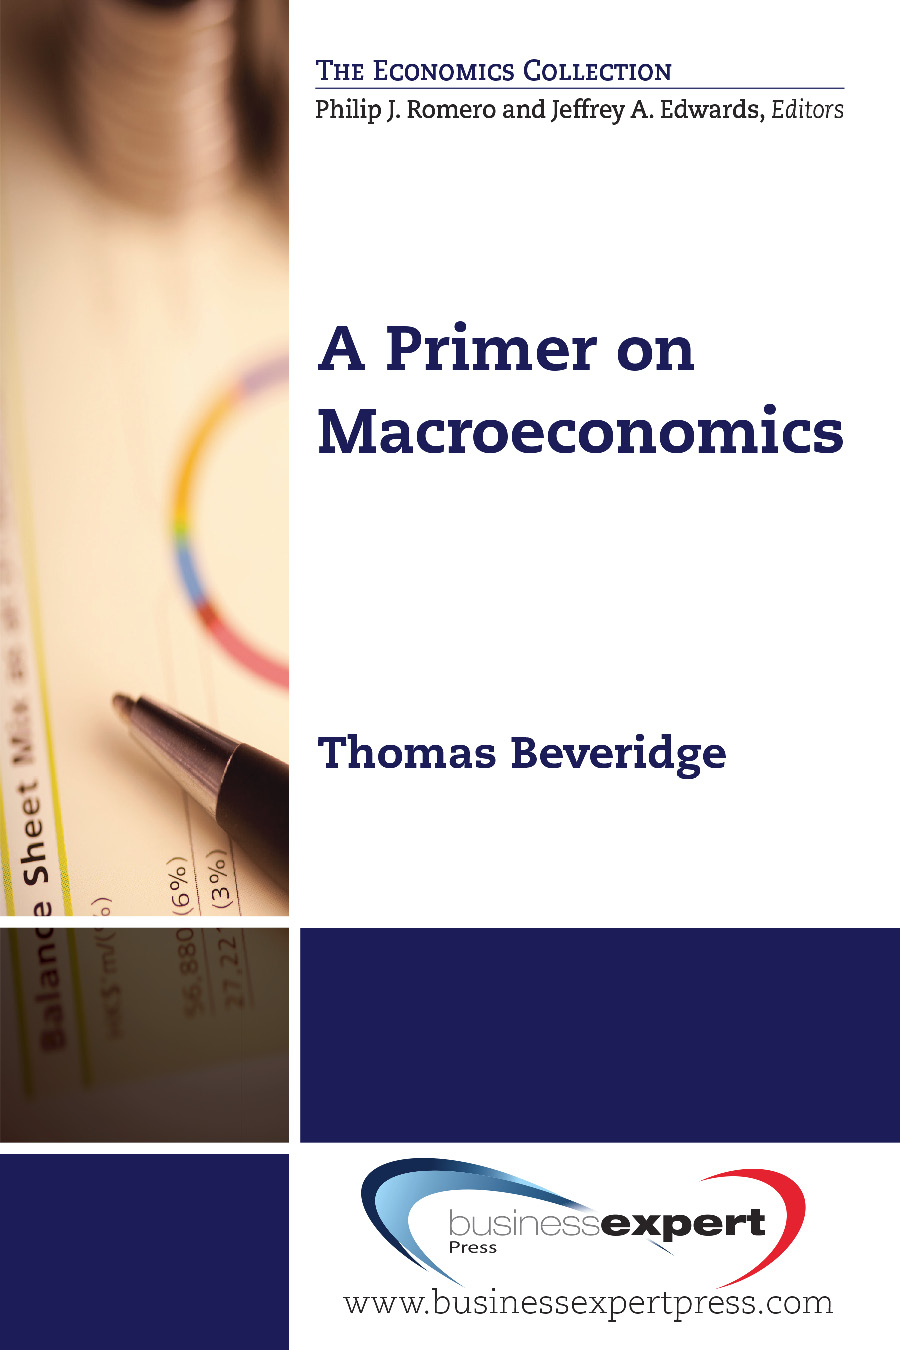 Download Ebook A Primer on Macroeconomics by Thomas Beveridge Pdf